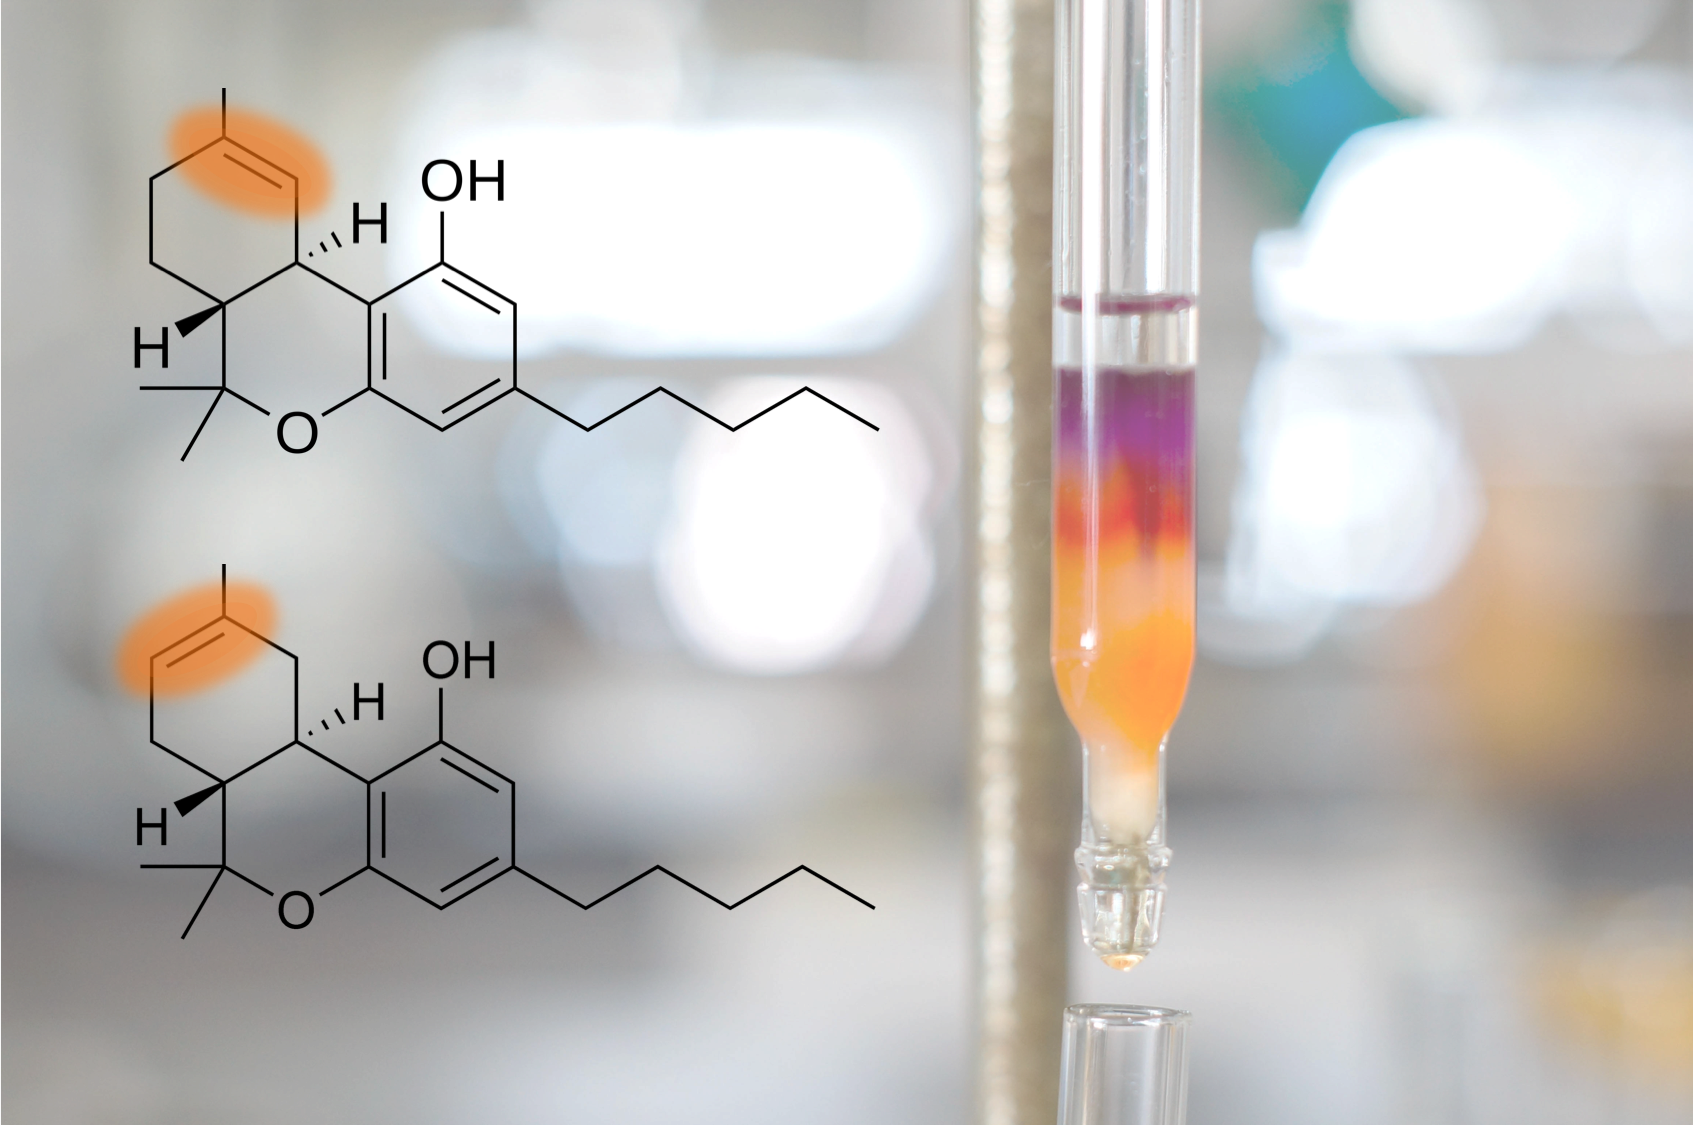 separation - Many cannabinoids are similar in chemical structure. A single alteration of the chemical structure will affect major functional changes. The two molecules of interest are Δ9-THC and Δ8-THC—one will act as an intoxicant and the other is non-psychoactive. Buzzkill Labs technology separates the compounds before analysis preventing false positives.